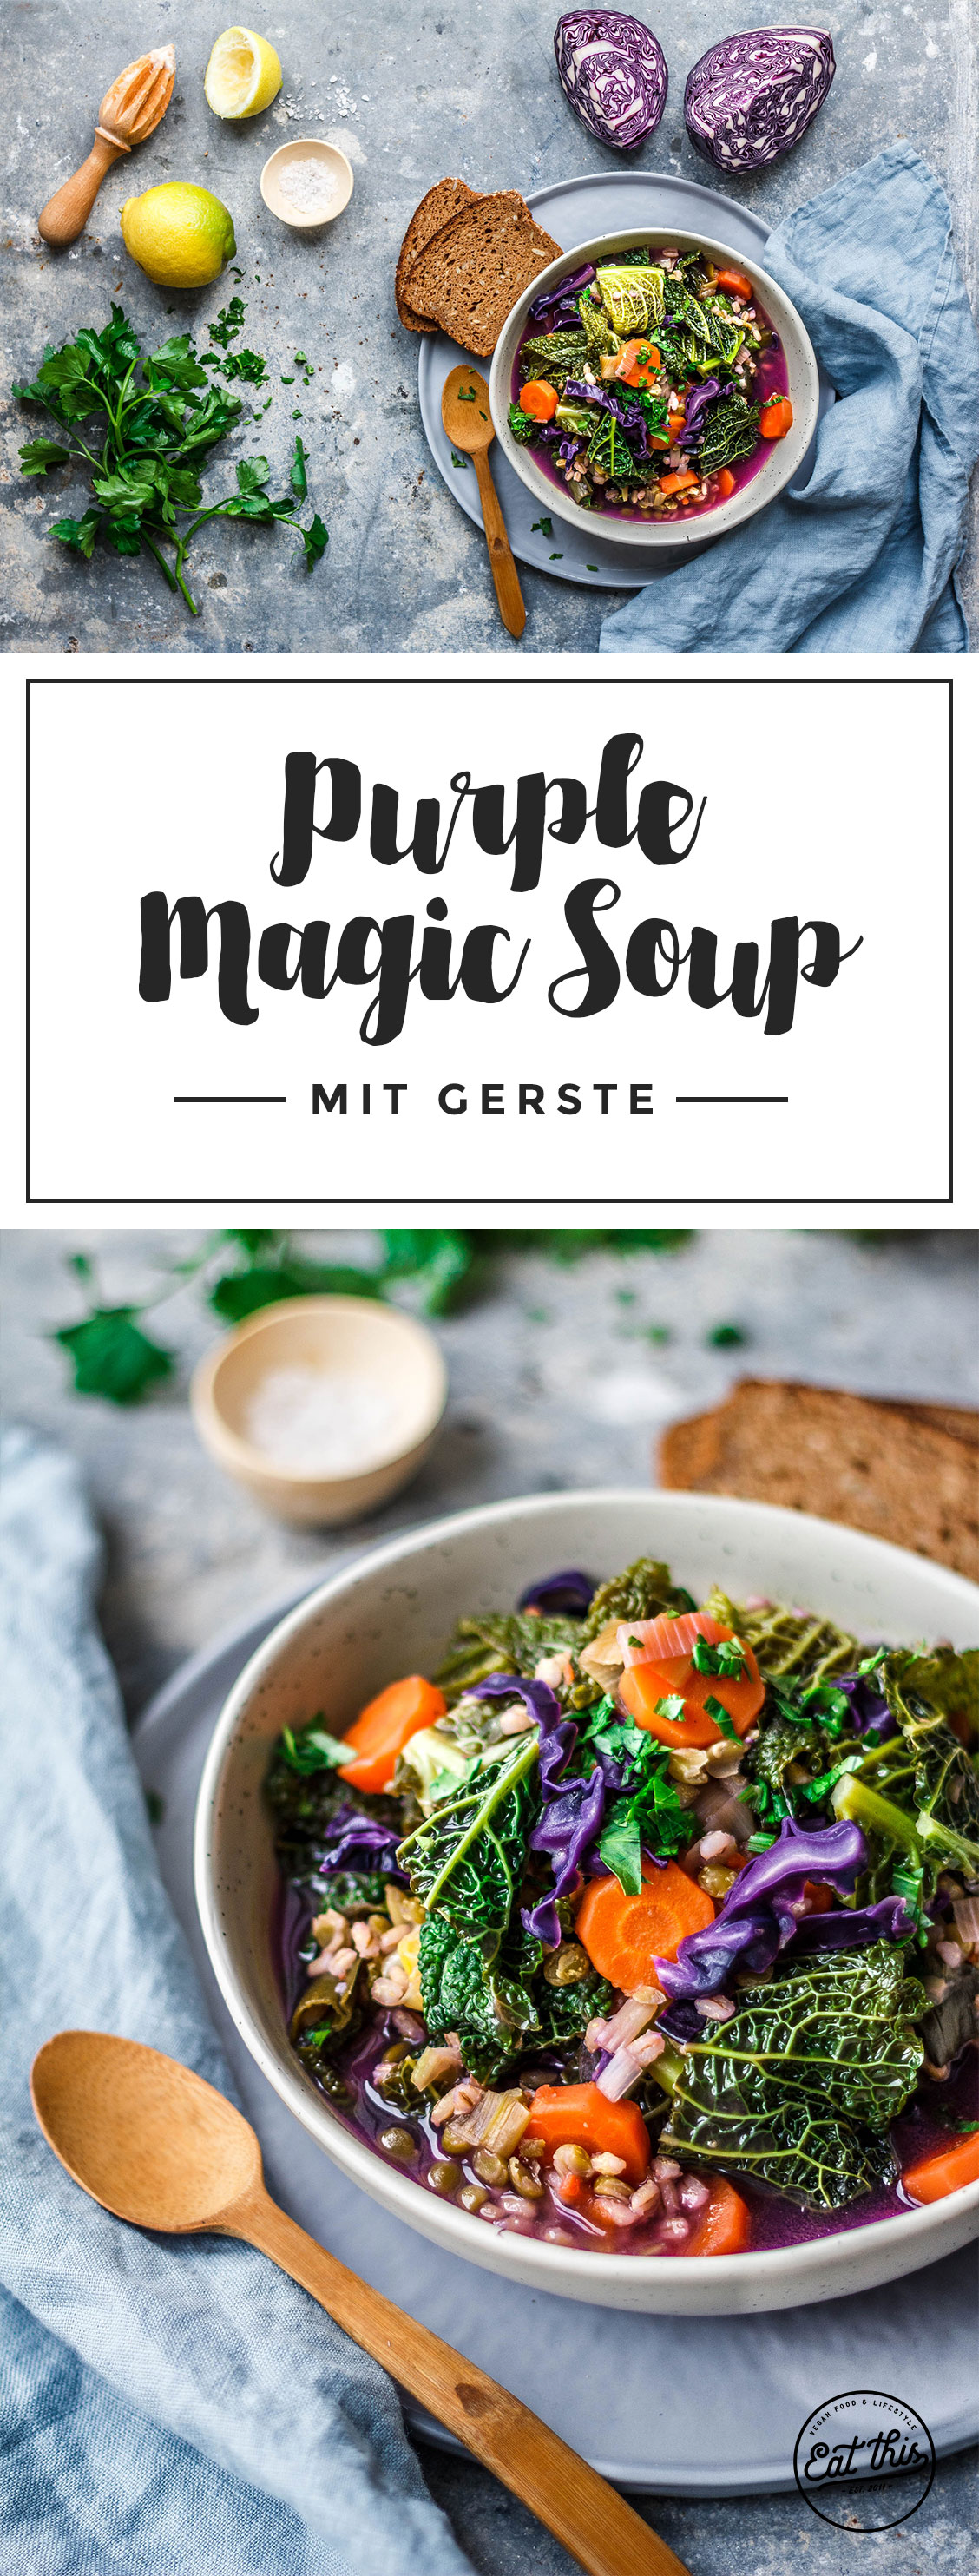 Purple Magic Soup